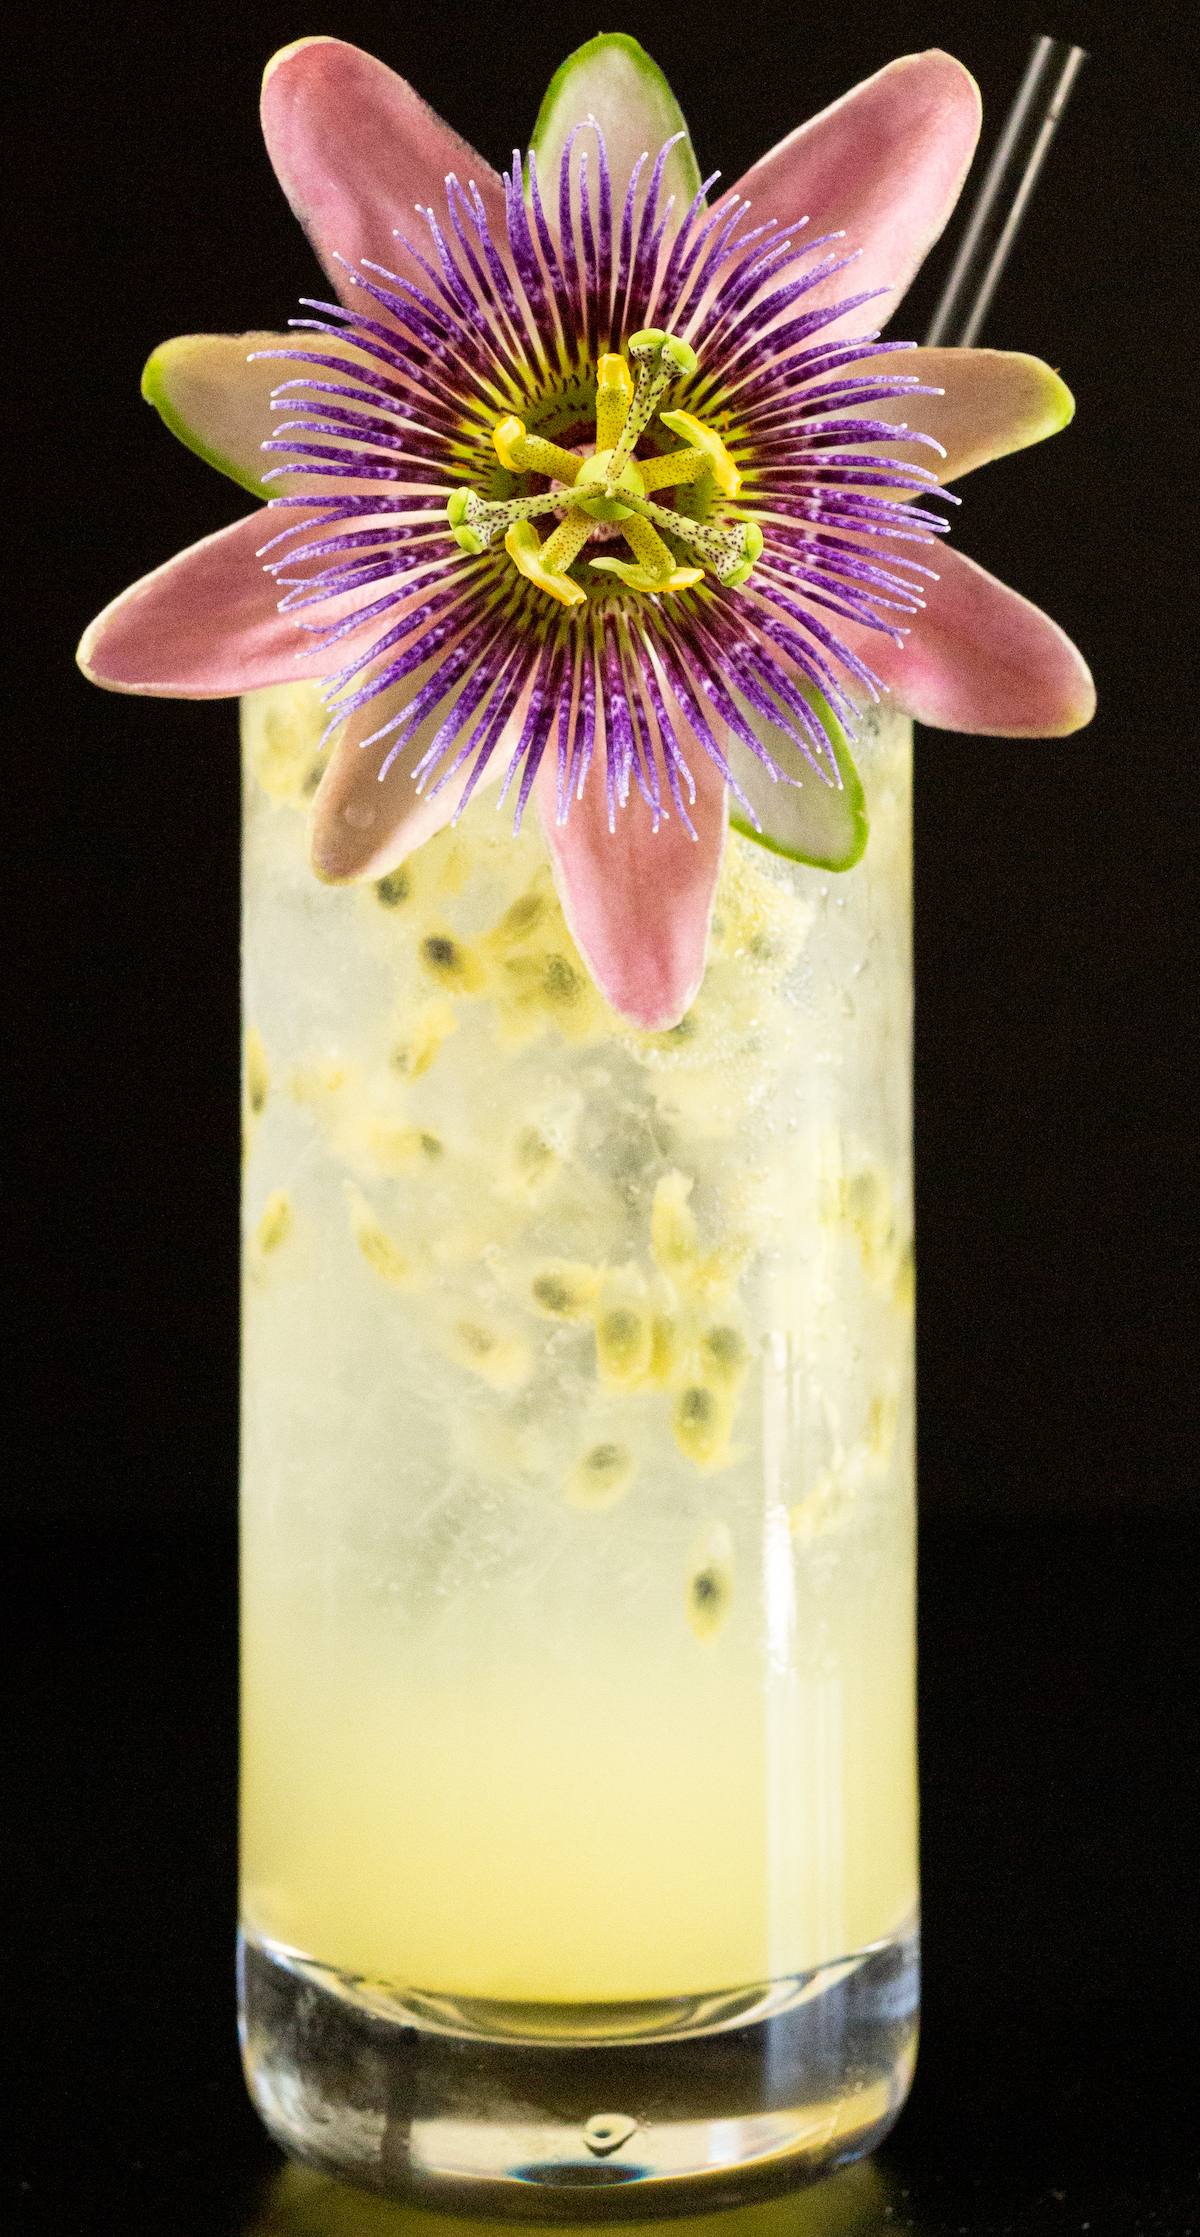 A passion fruit cocktail in a highball glass is garnished with a passion fruit flower